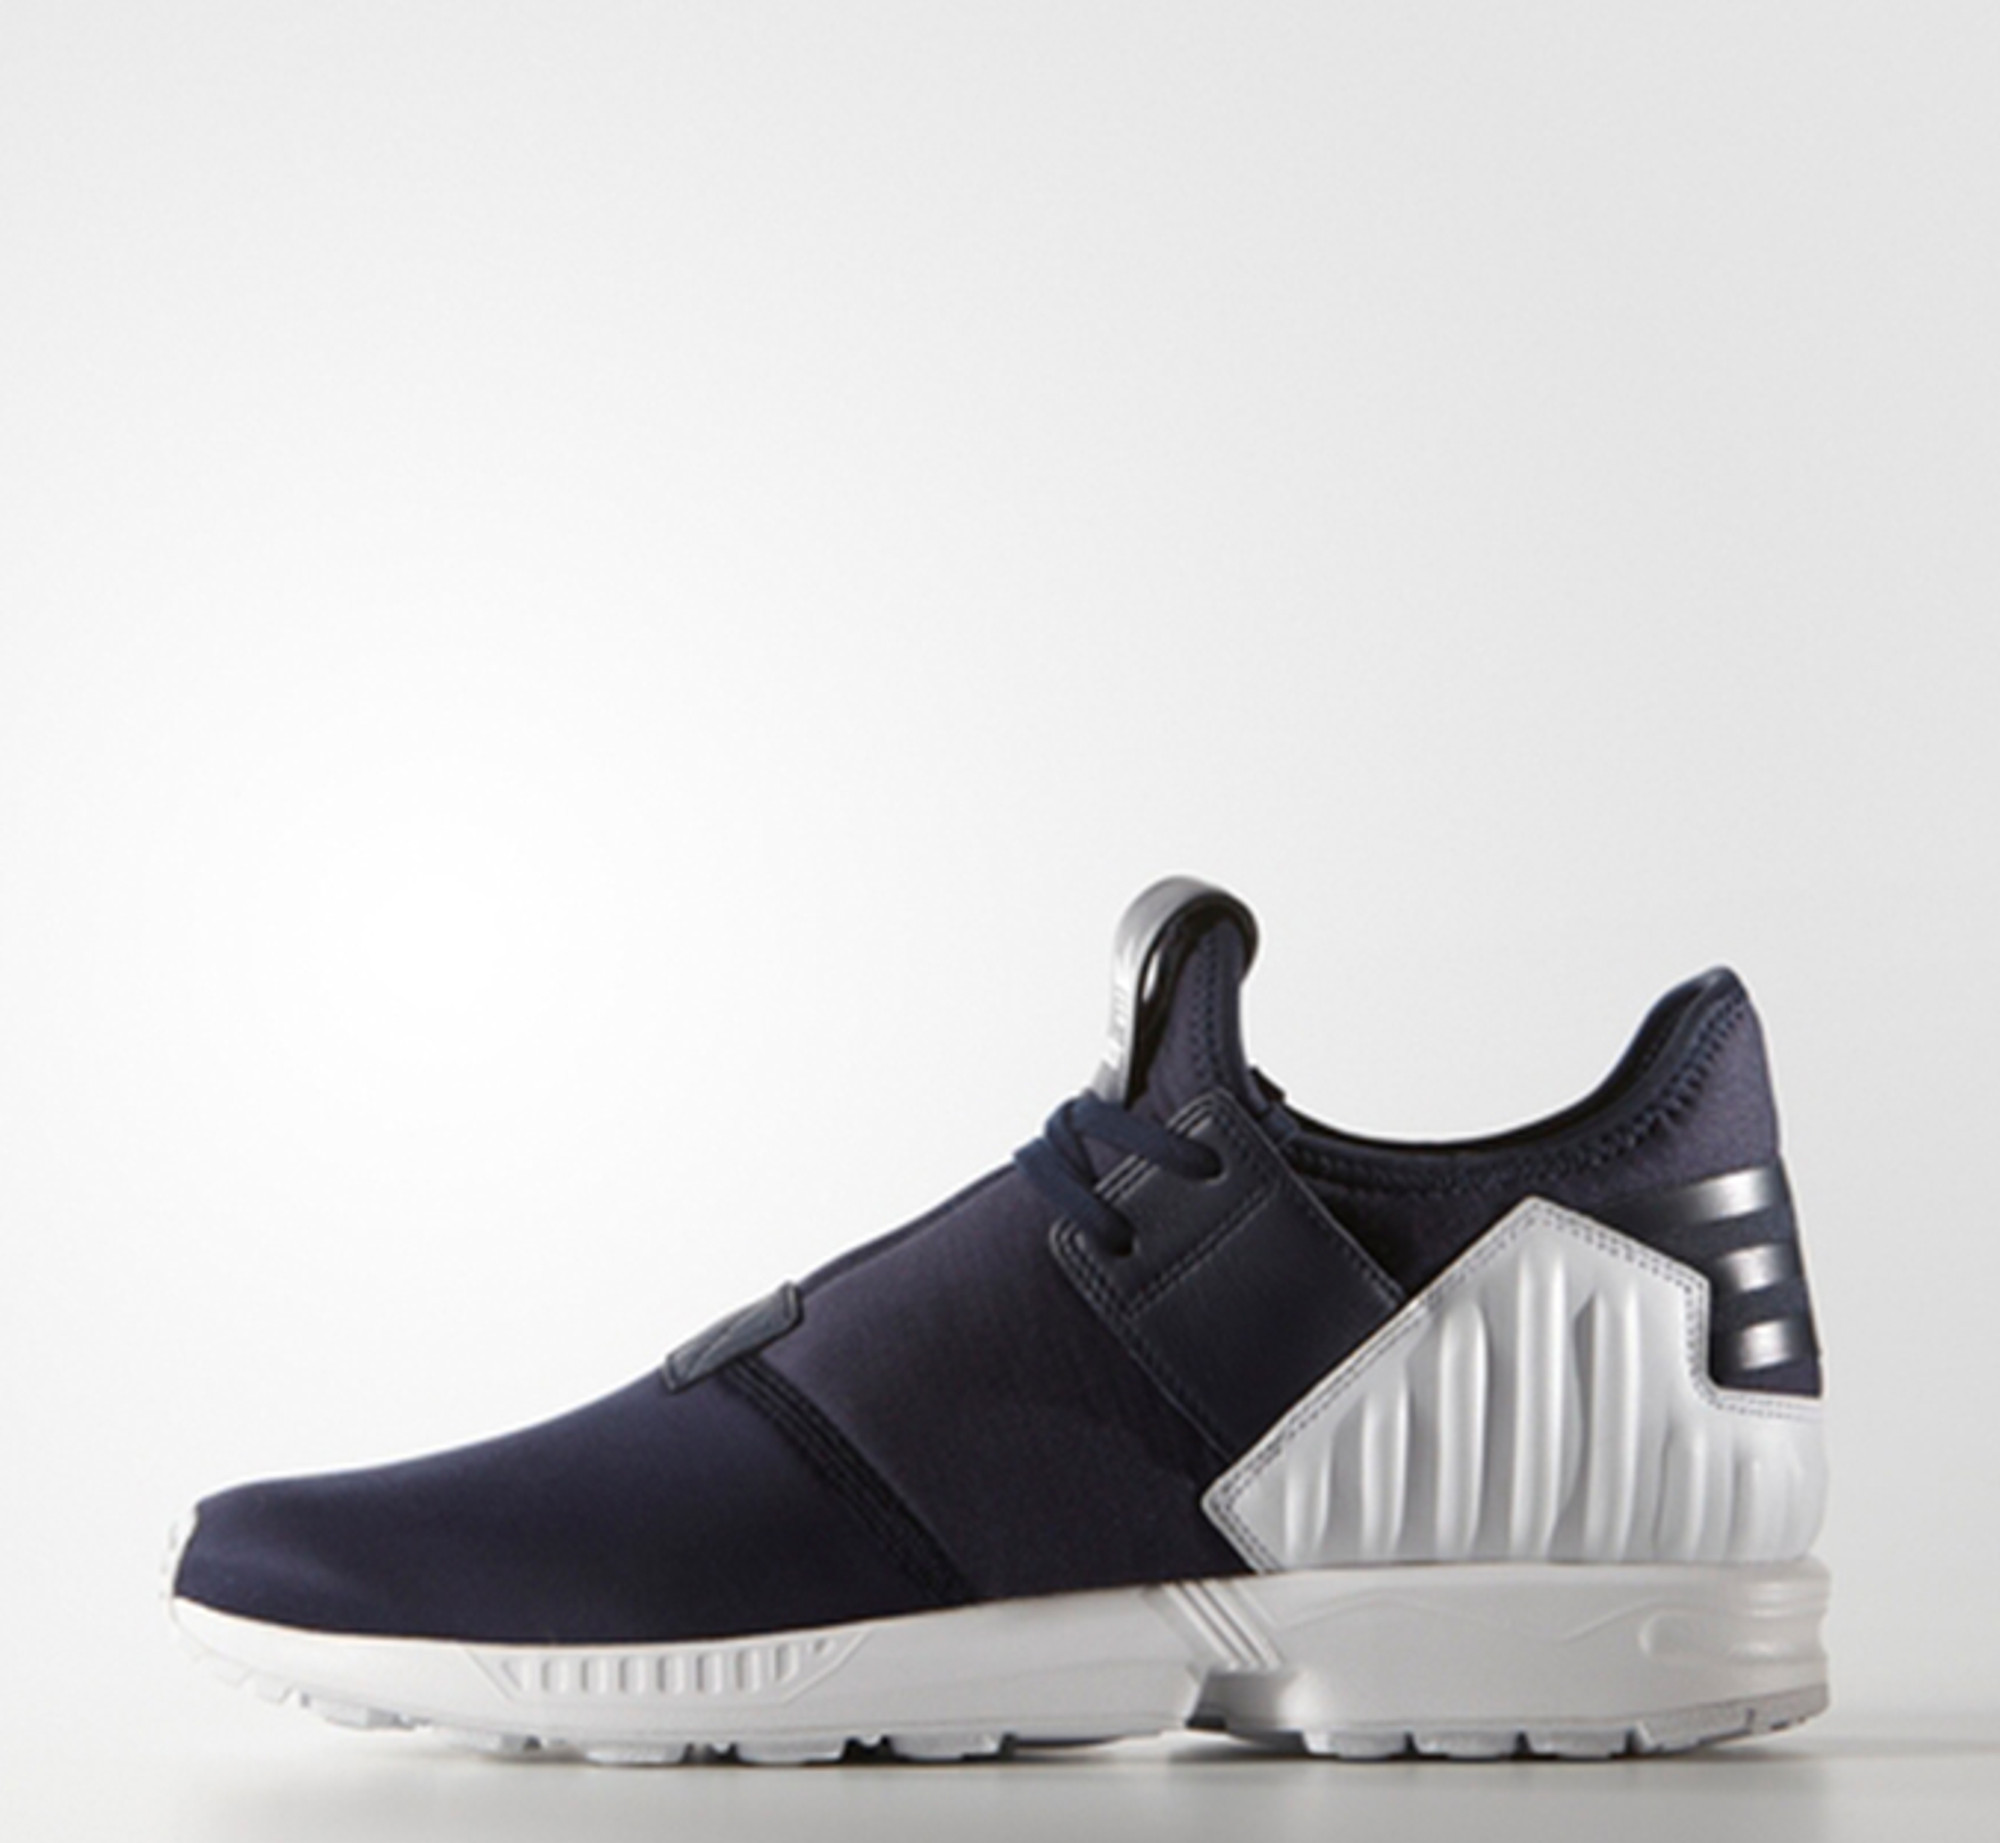 new product ec97d 7d9d4 adidas ZX Flux Plus S79061